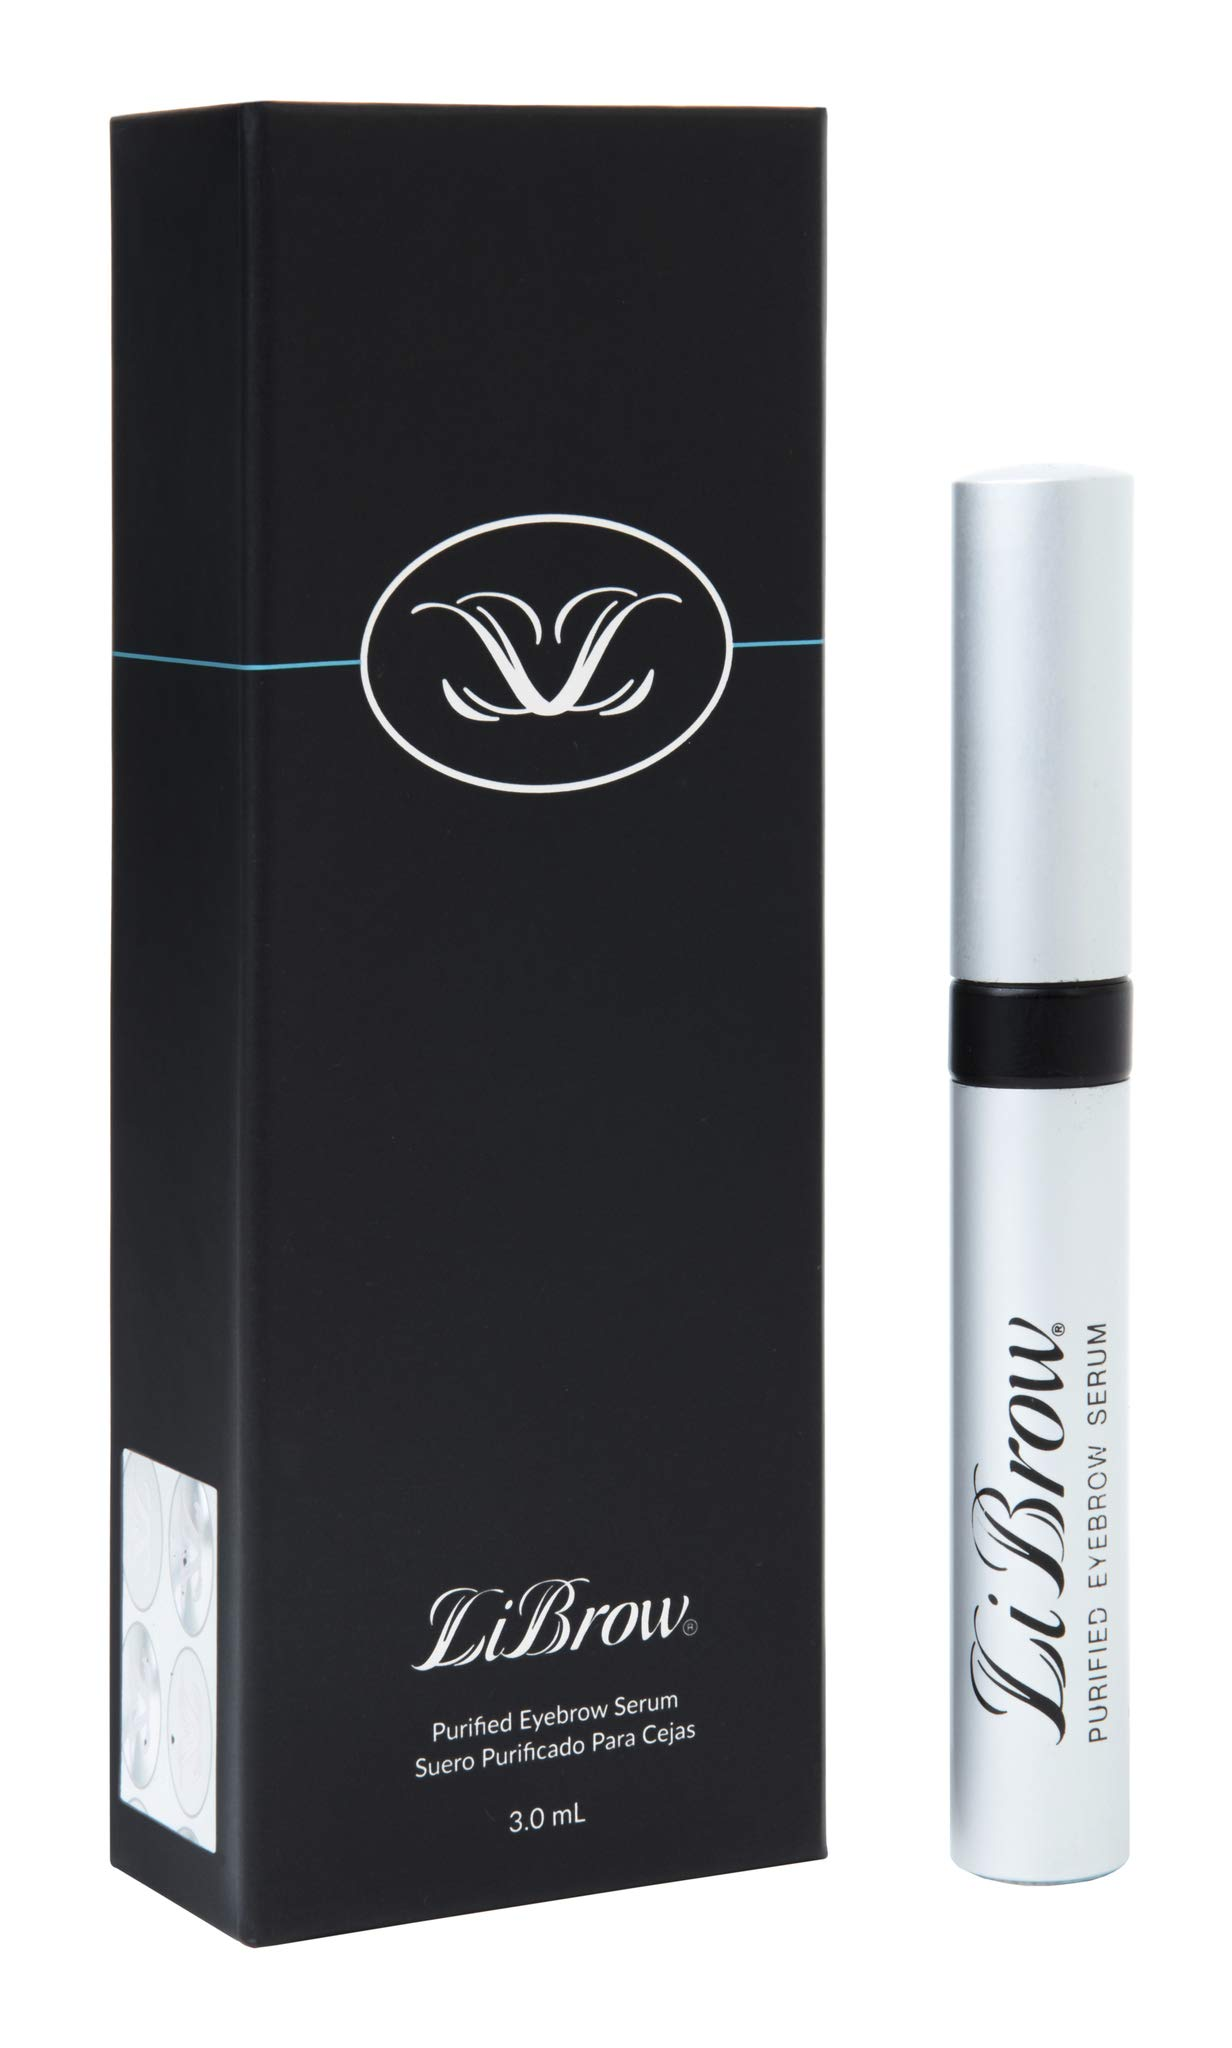 LiBrow Purified Eyebrow Physician-Formulated Serum for Fuller & Thicker Looking Eyebrows | Natural Eyebrow Enhancer Safe for Sensitive Skin | 90-Day Supply (3ml) by LiBrow